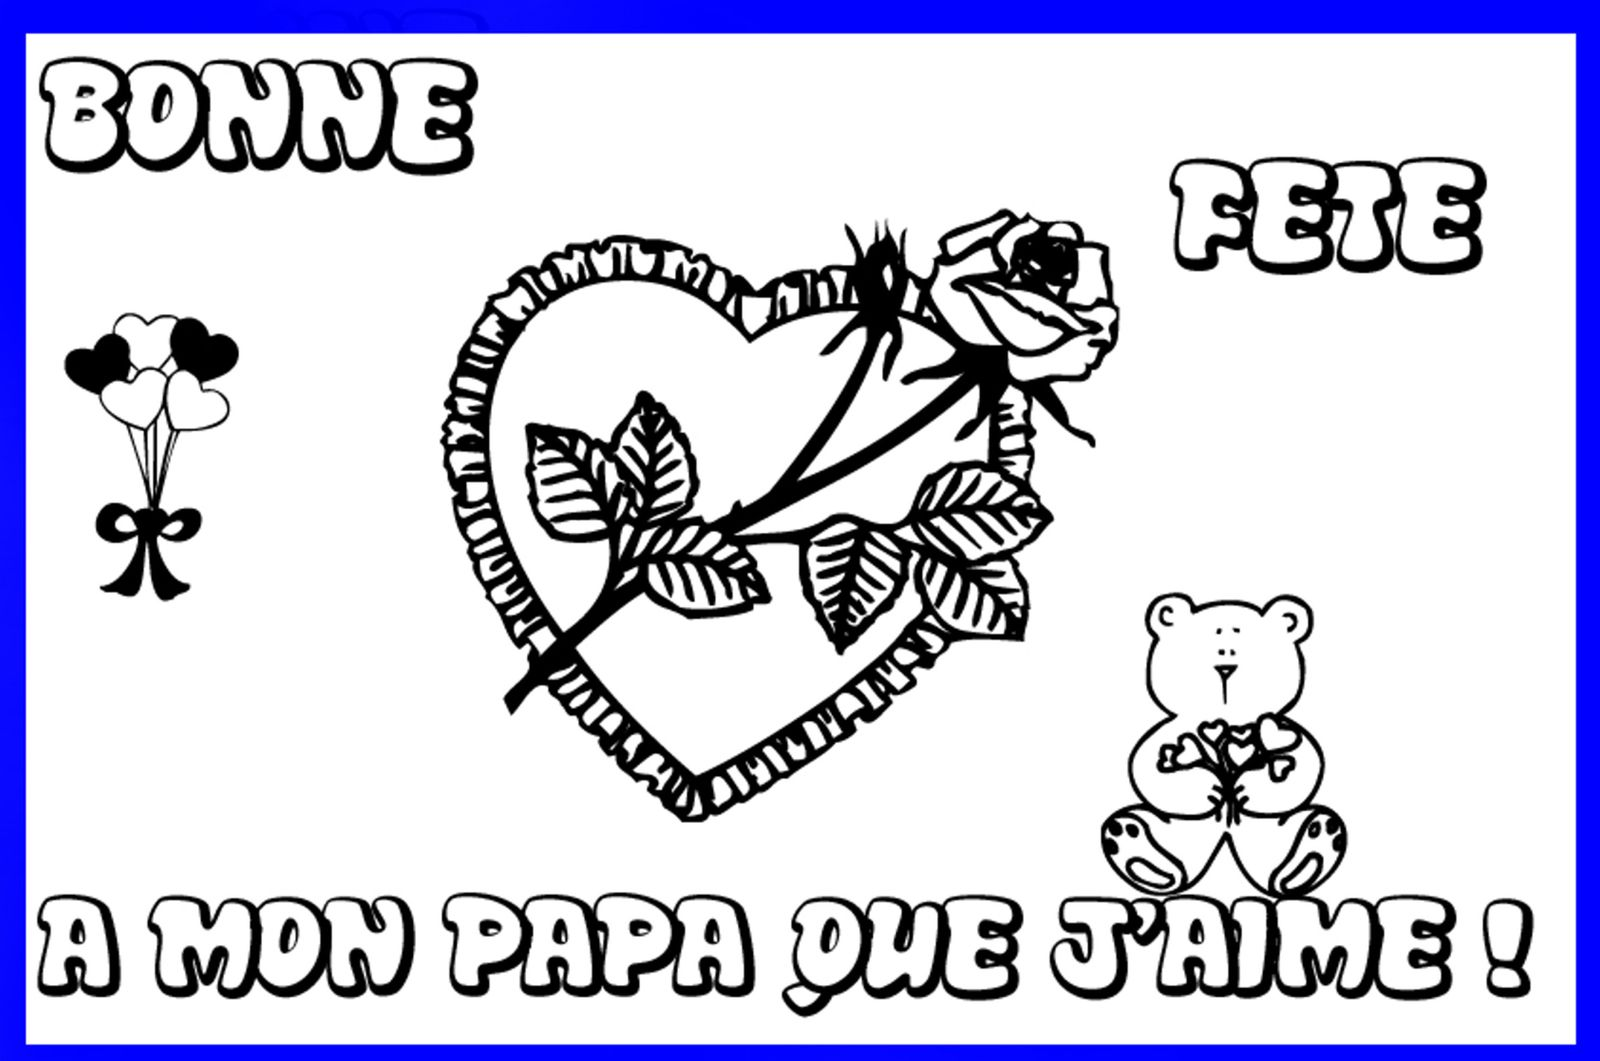 Bonne fete papa father day happy massilia serviette - Poeme fete des papa a imprimer ...